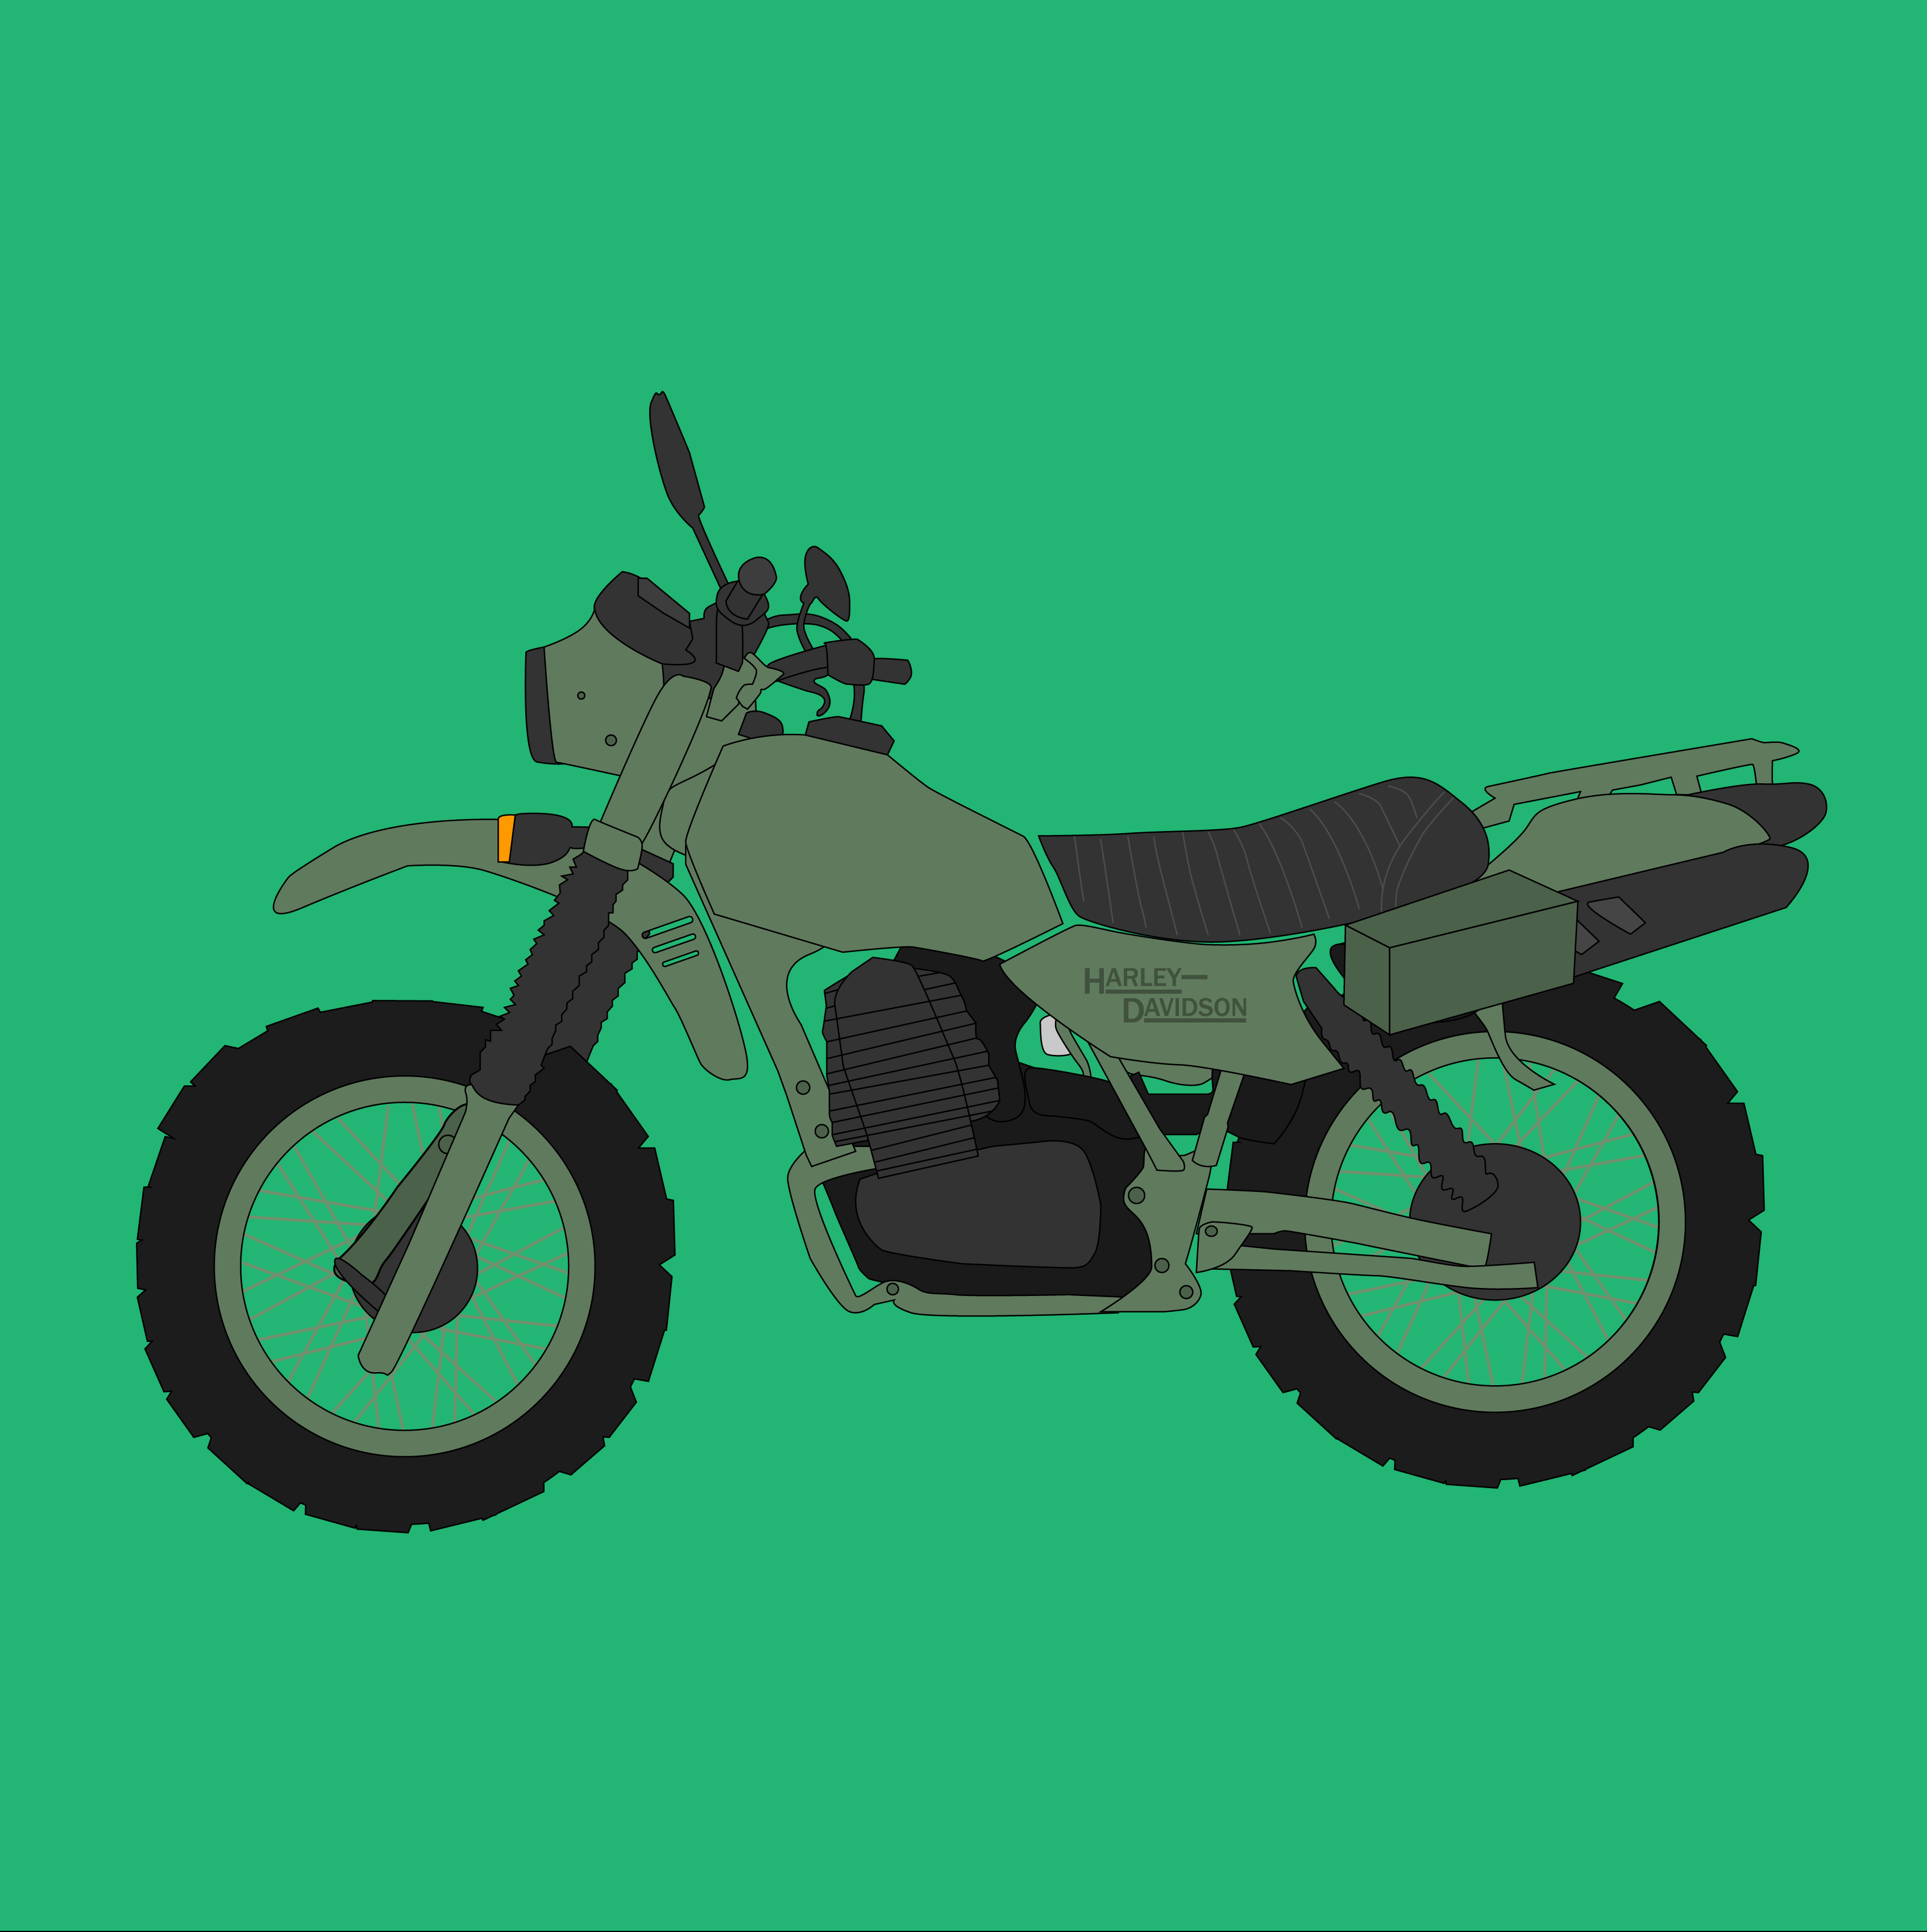 As a Christmas present for my biker father, I decided a design of ...